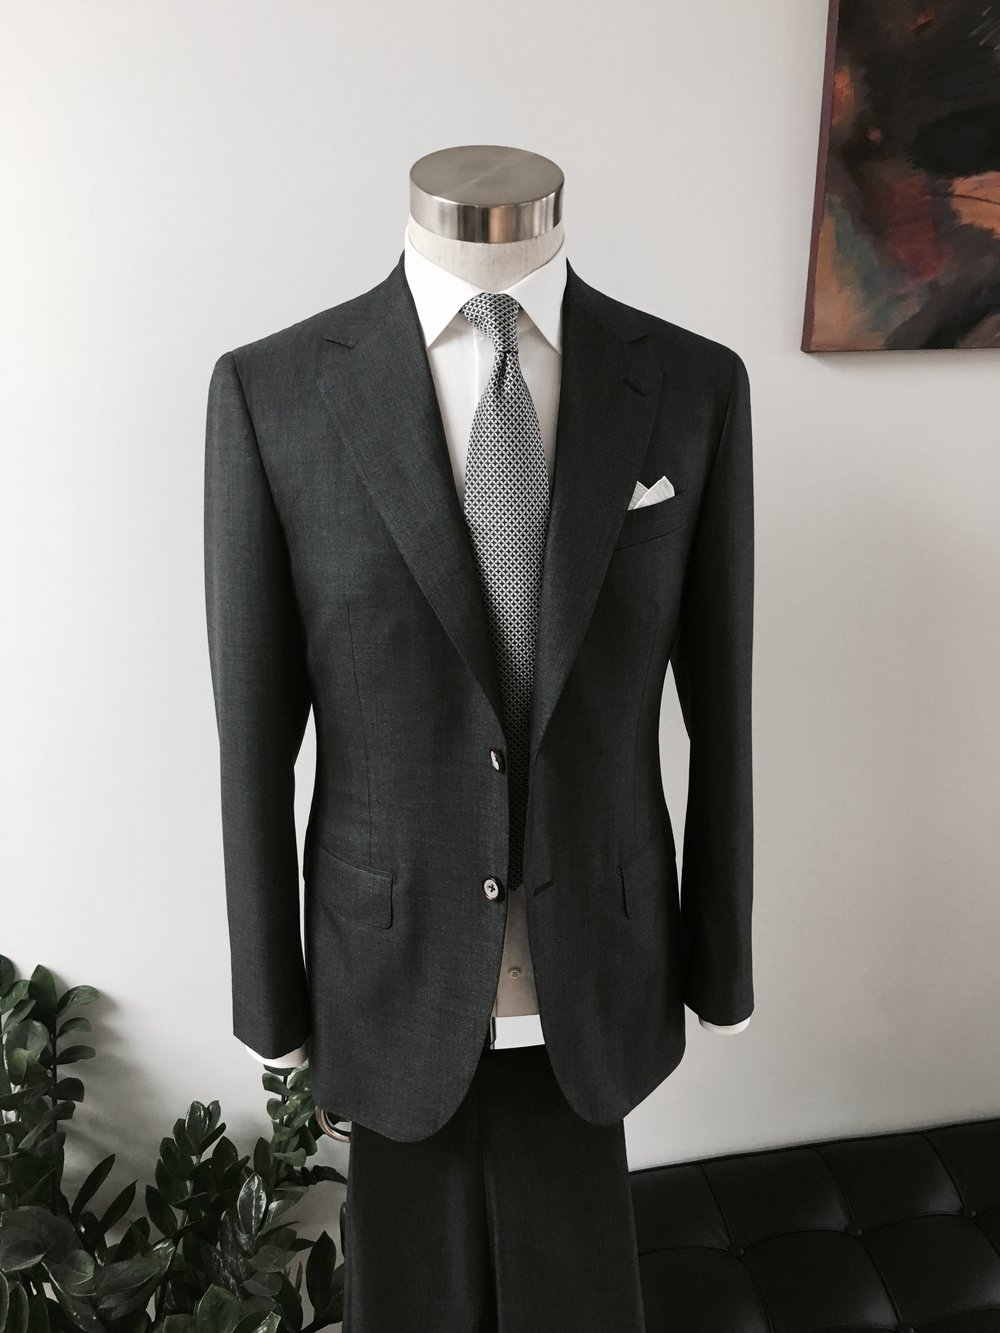 Bespoke Suiting in Wool Silk, 5,000 Handmade Stitches, 50 Man Hours.